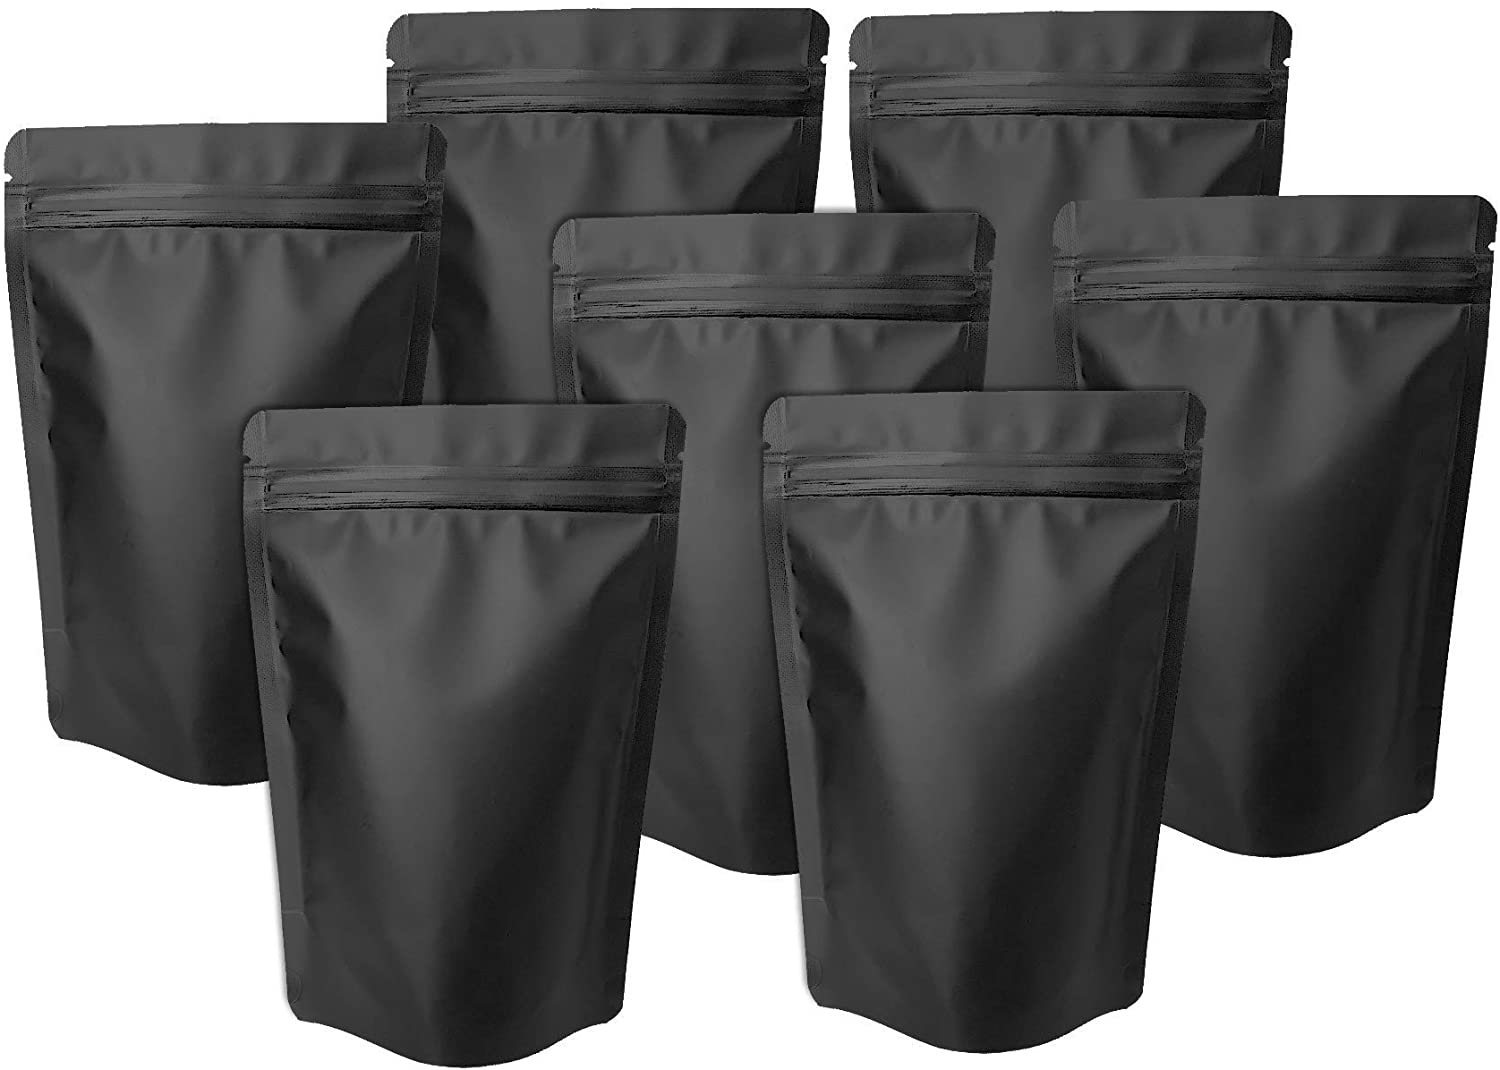 100 Pack Matte Black Mylar Stand Up Bags - 6.3x9.4 Inches Smell Proof Resealable Ziplock Bags, Sealable Foil Packaging Bags